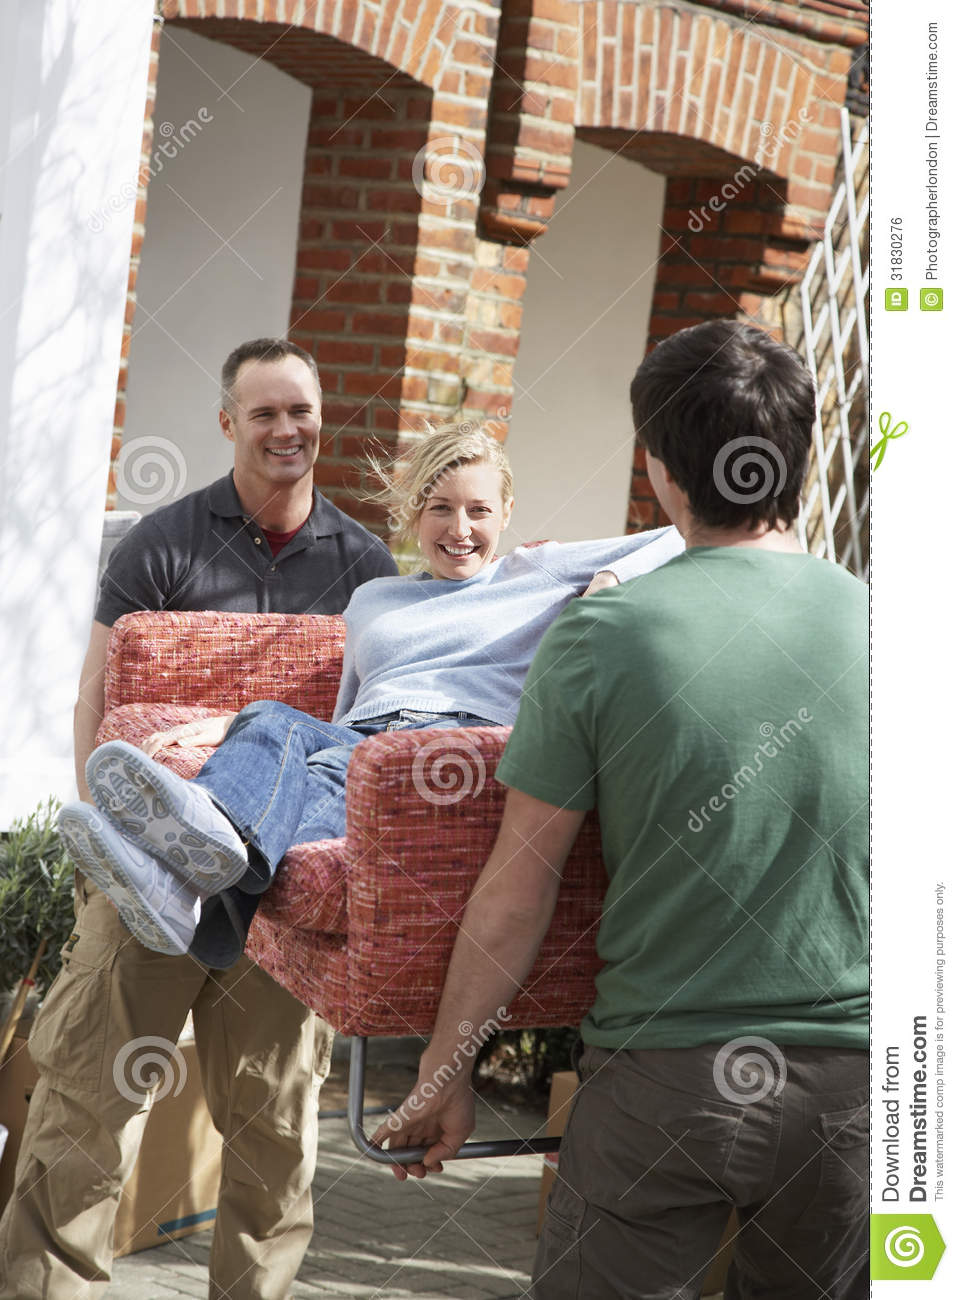 Men Carrying Woman On Sofa Outdoors Stock Photo Image